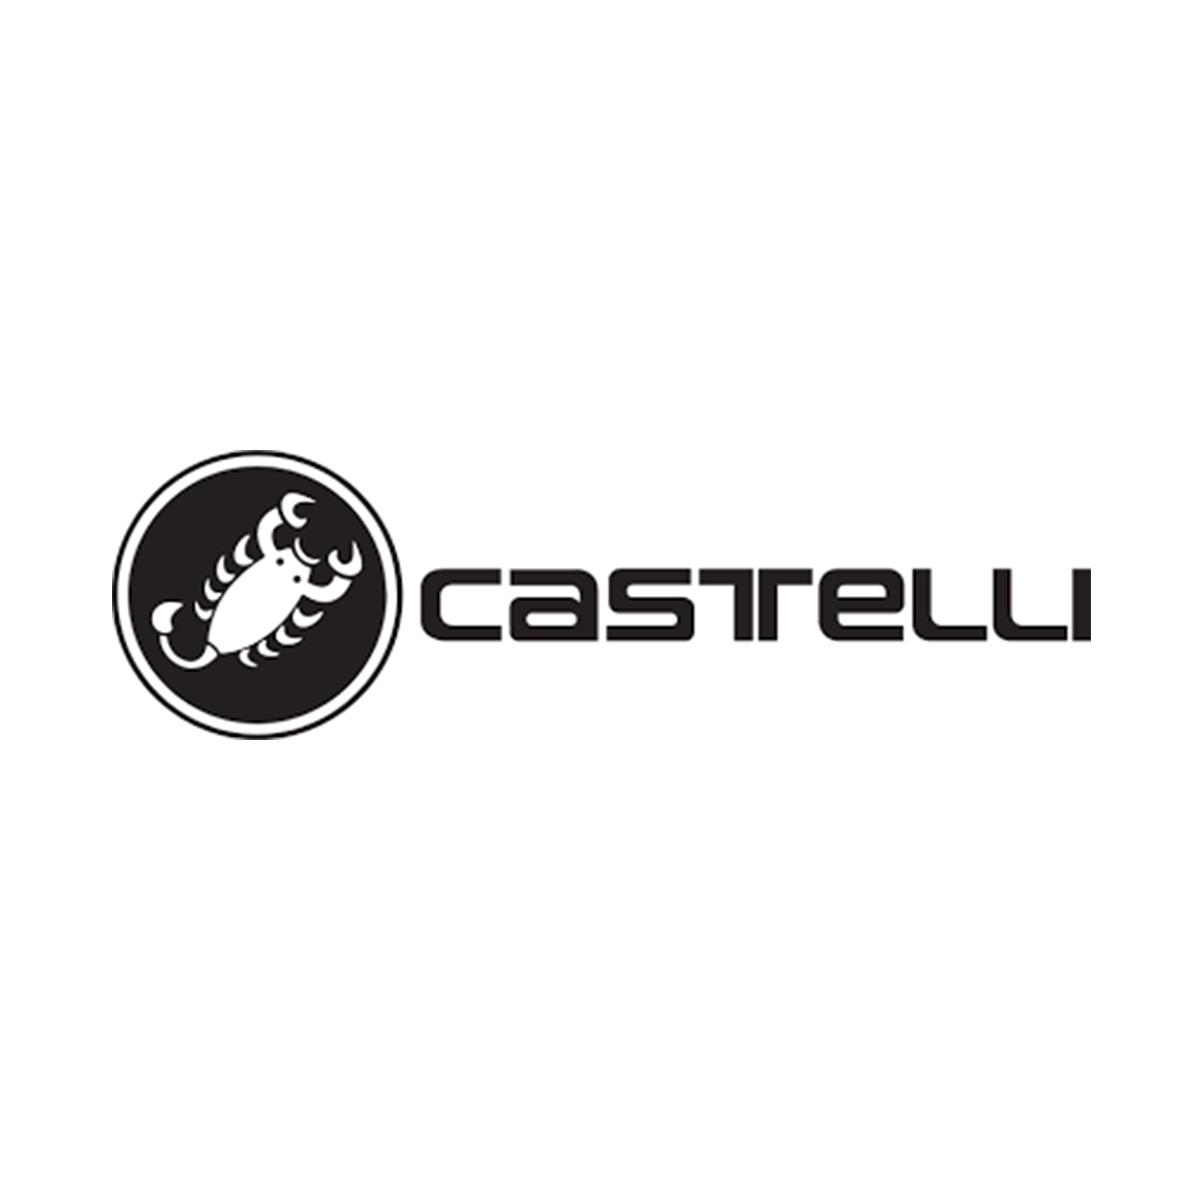 Castelli canvassed.png